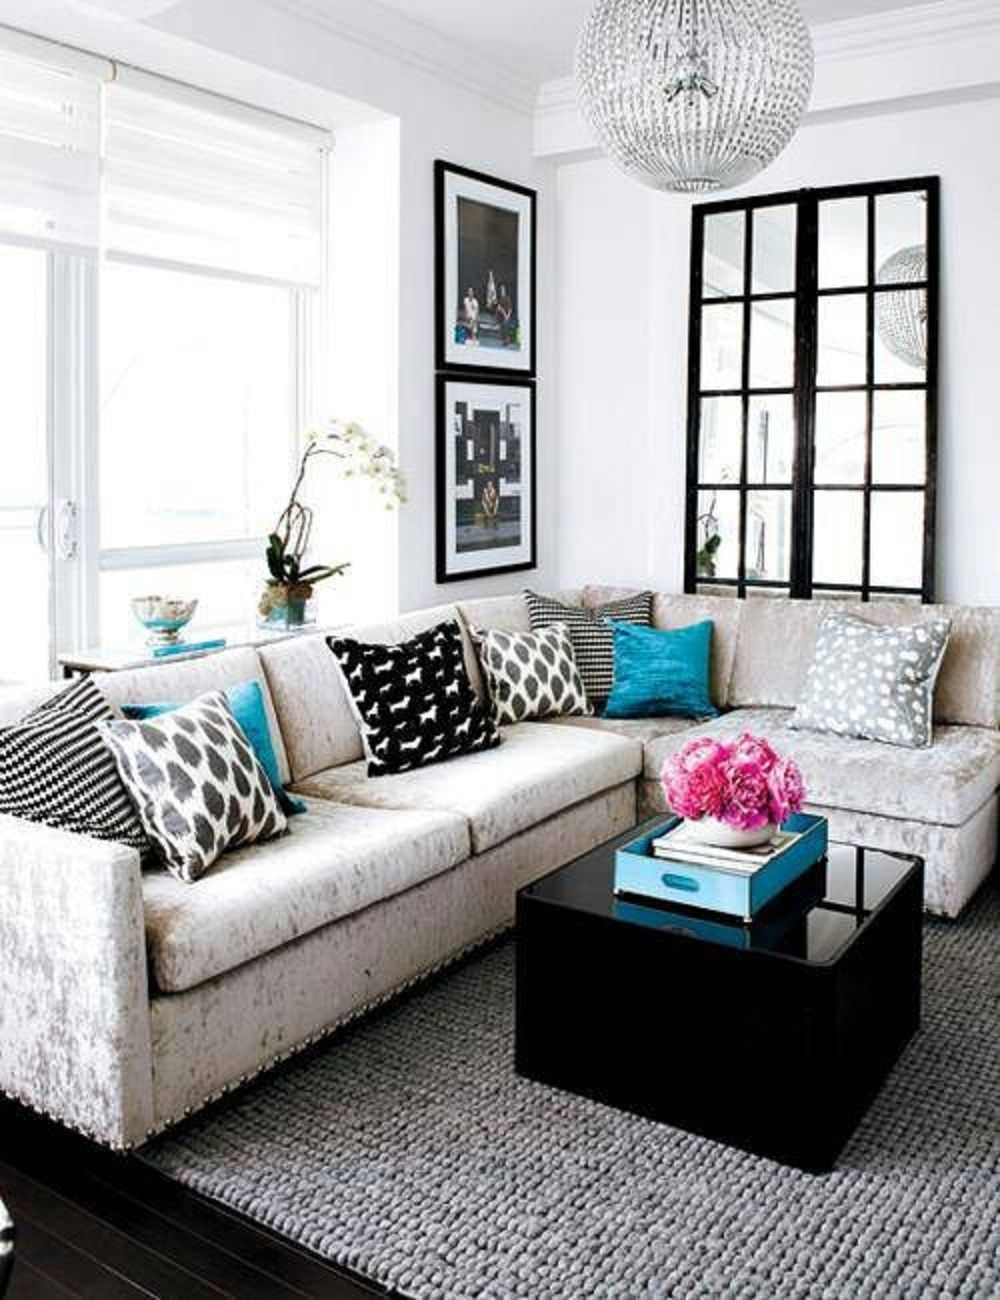 Minimalist Small Living Room Interior With L Shaped Sofa Set And